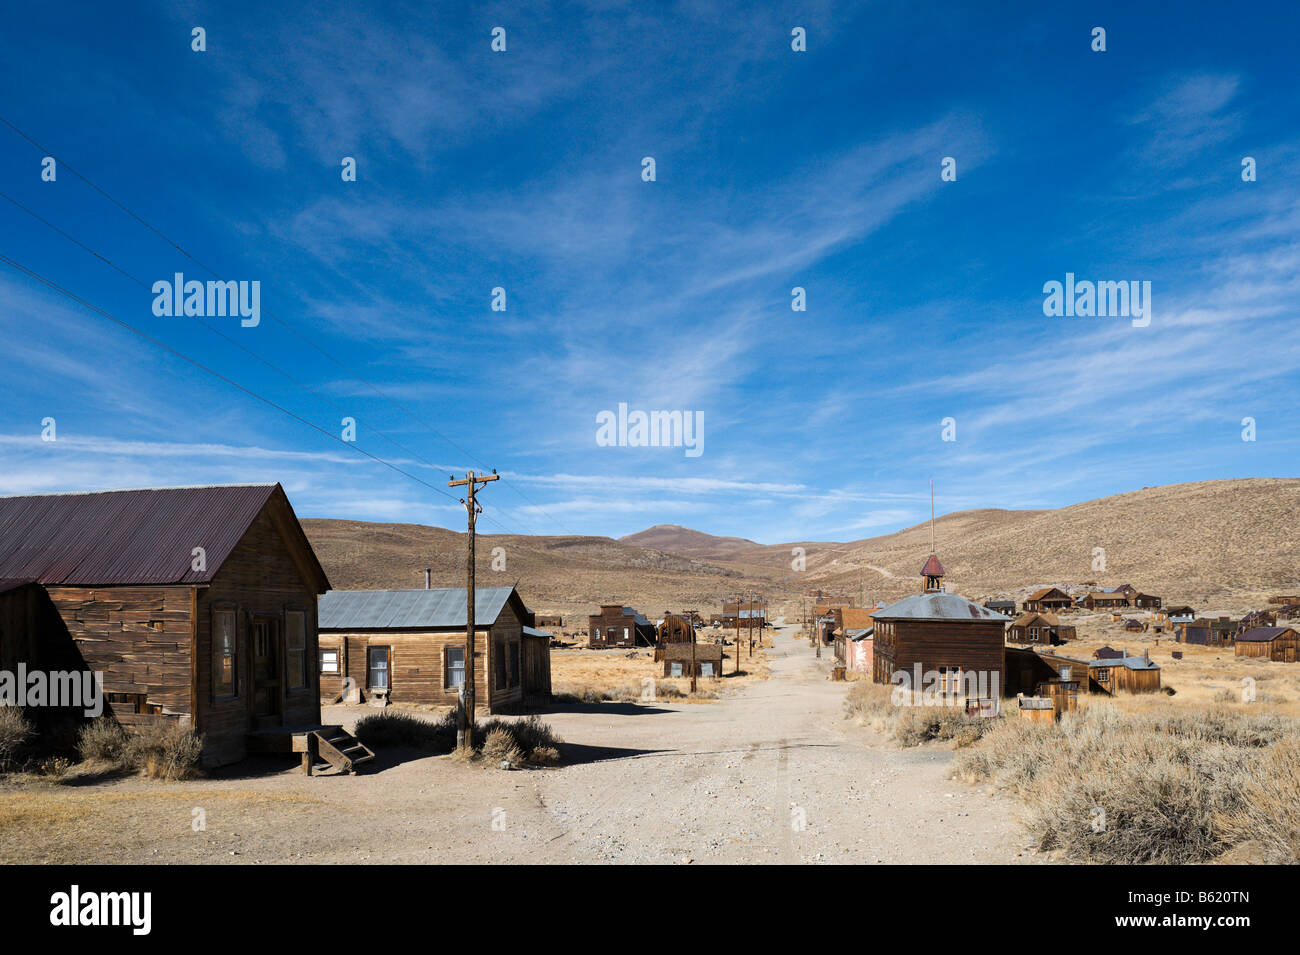 Green Street in the 19thC gold mining ghost town of Bodie, near Bridgeport, Sierra Nevada Mountains, California, - Stock Image